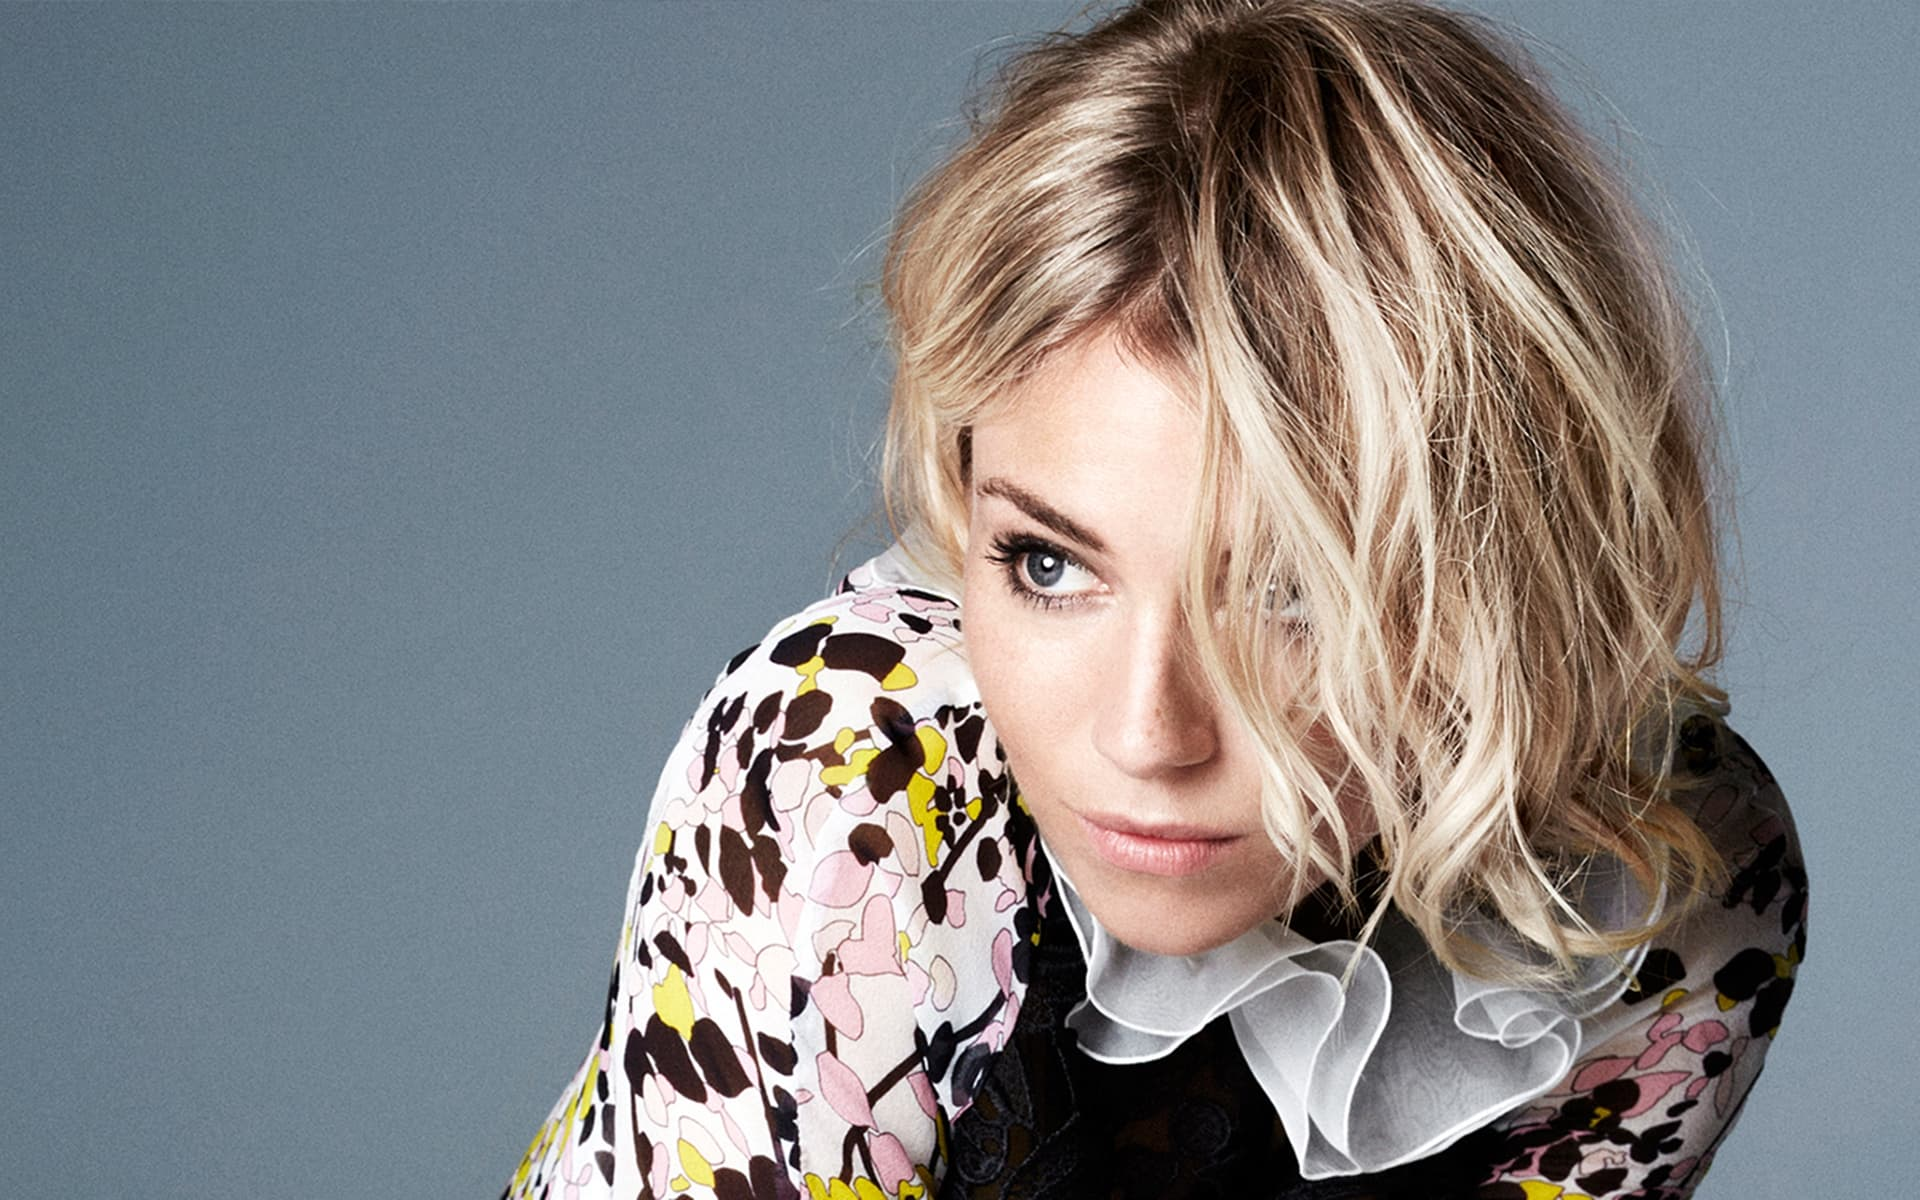 20 Sienna Miller Wallpapers High Quality Download